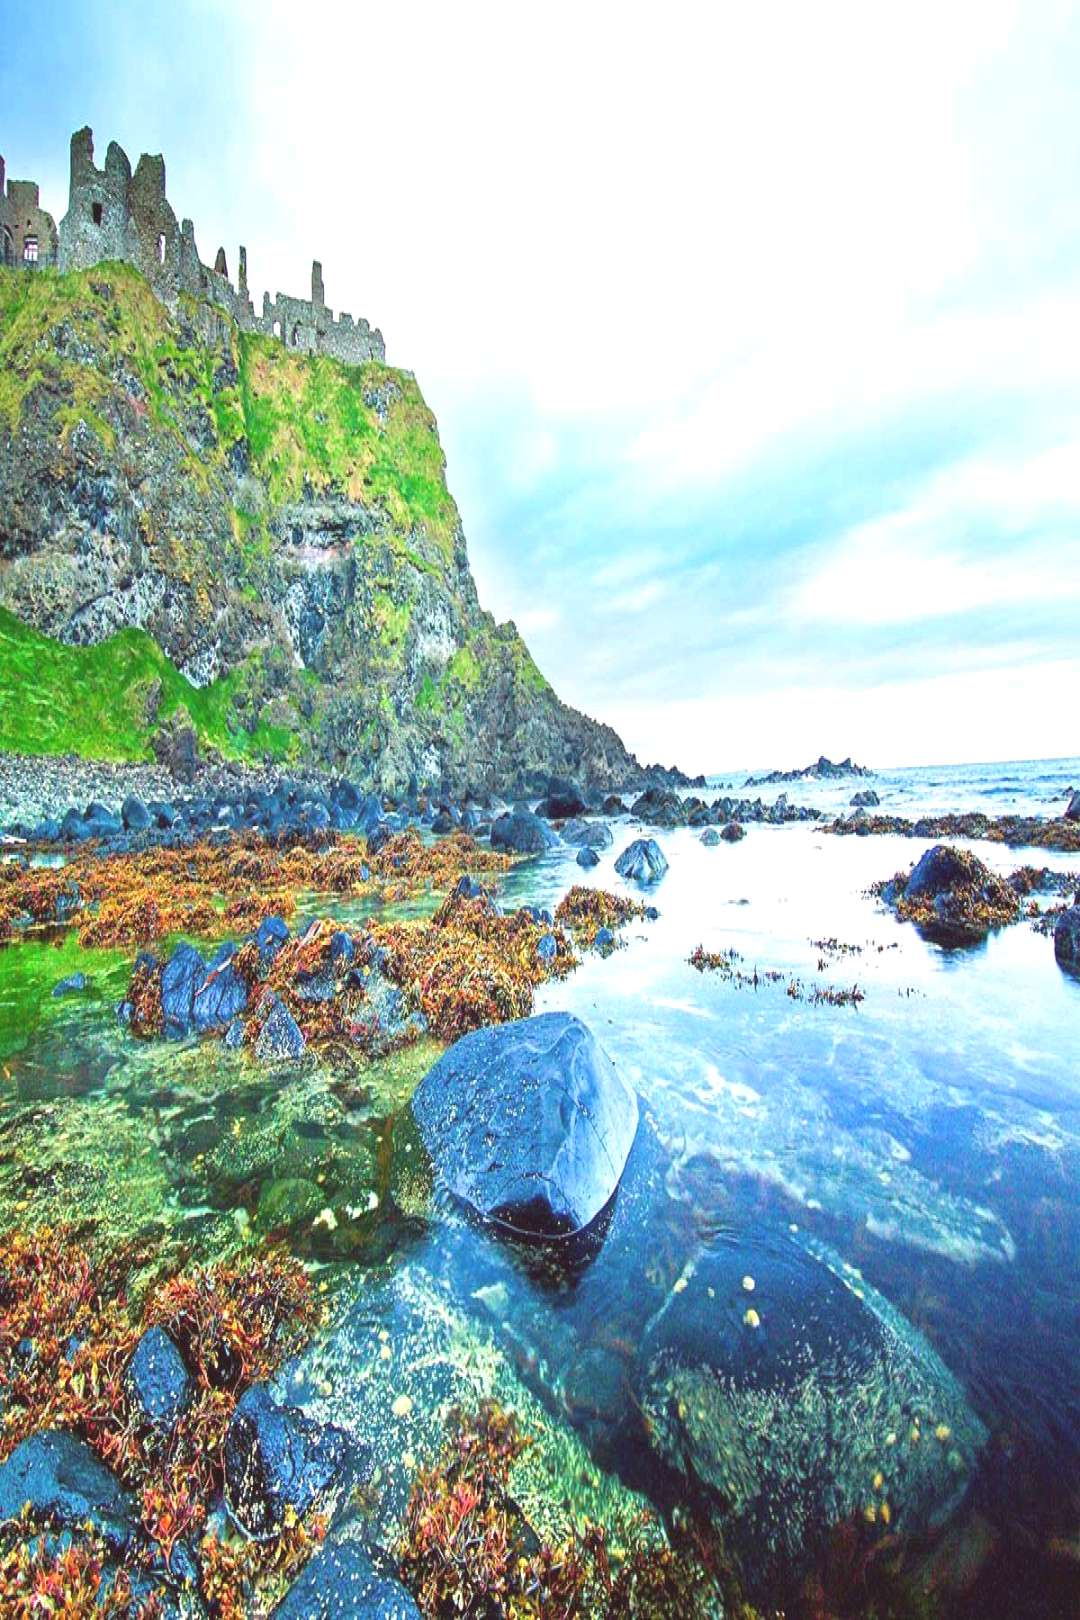 The mysterious Dunluce Castle Cliff in Northern Ireland.